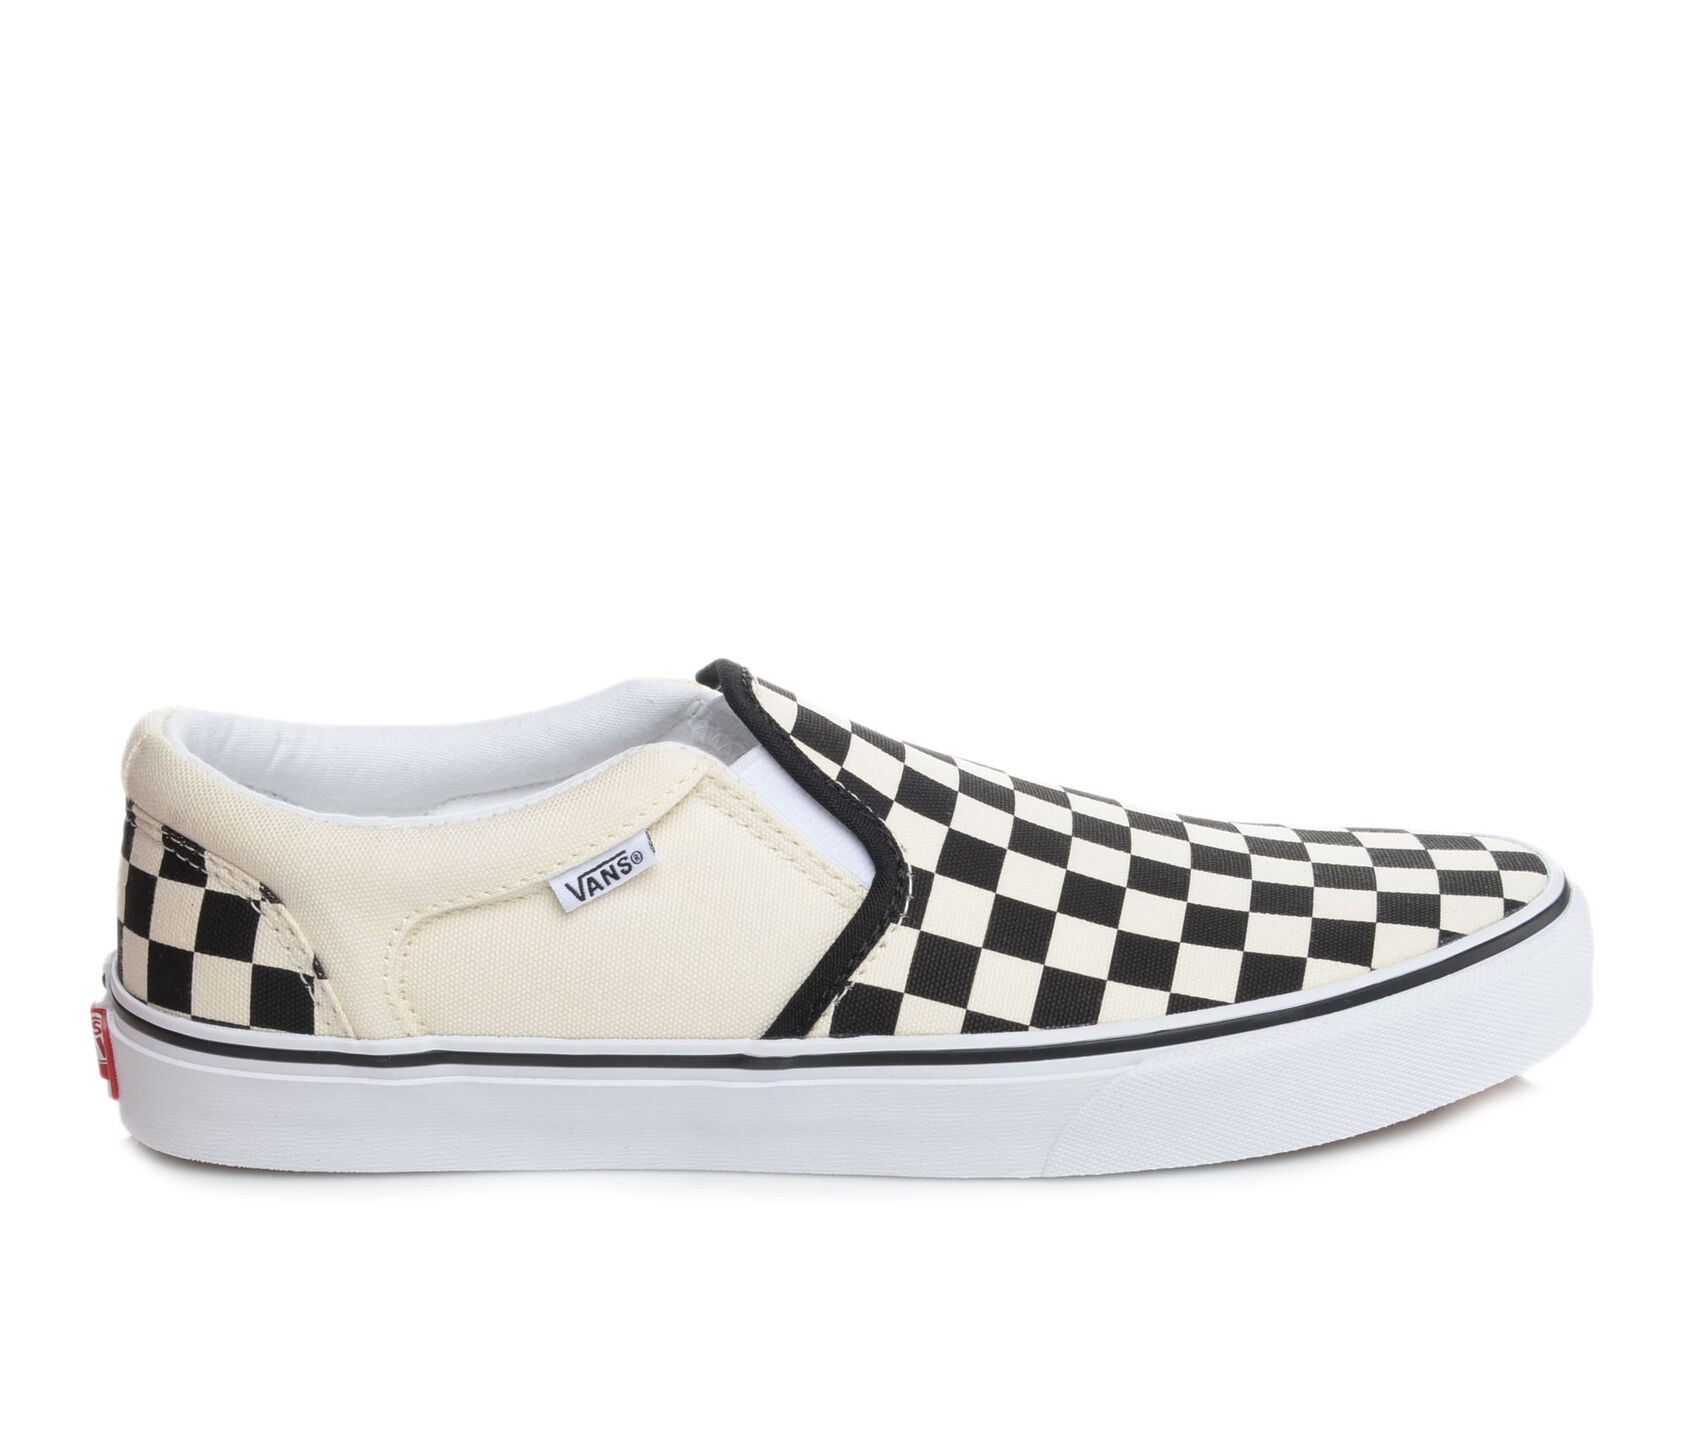 Zappos Womens Skate Shoes